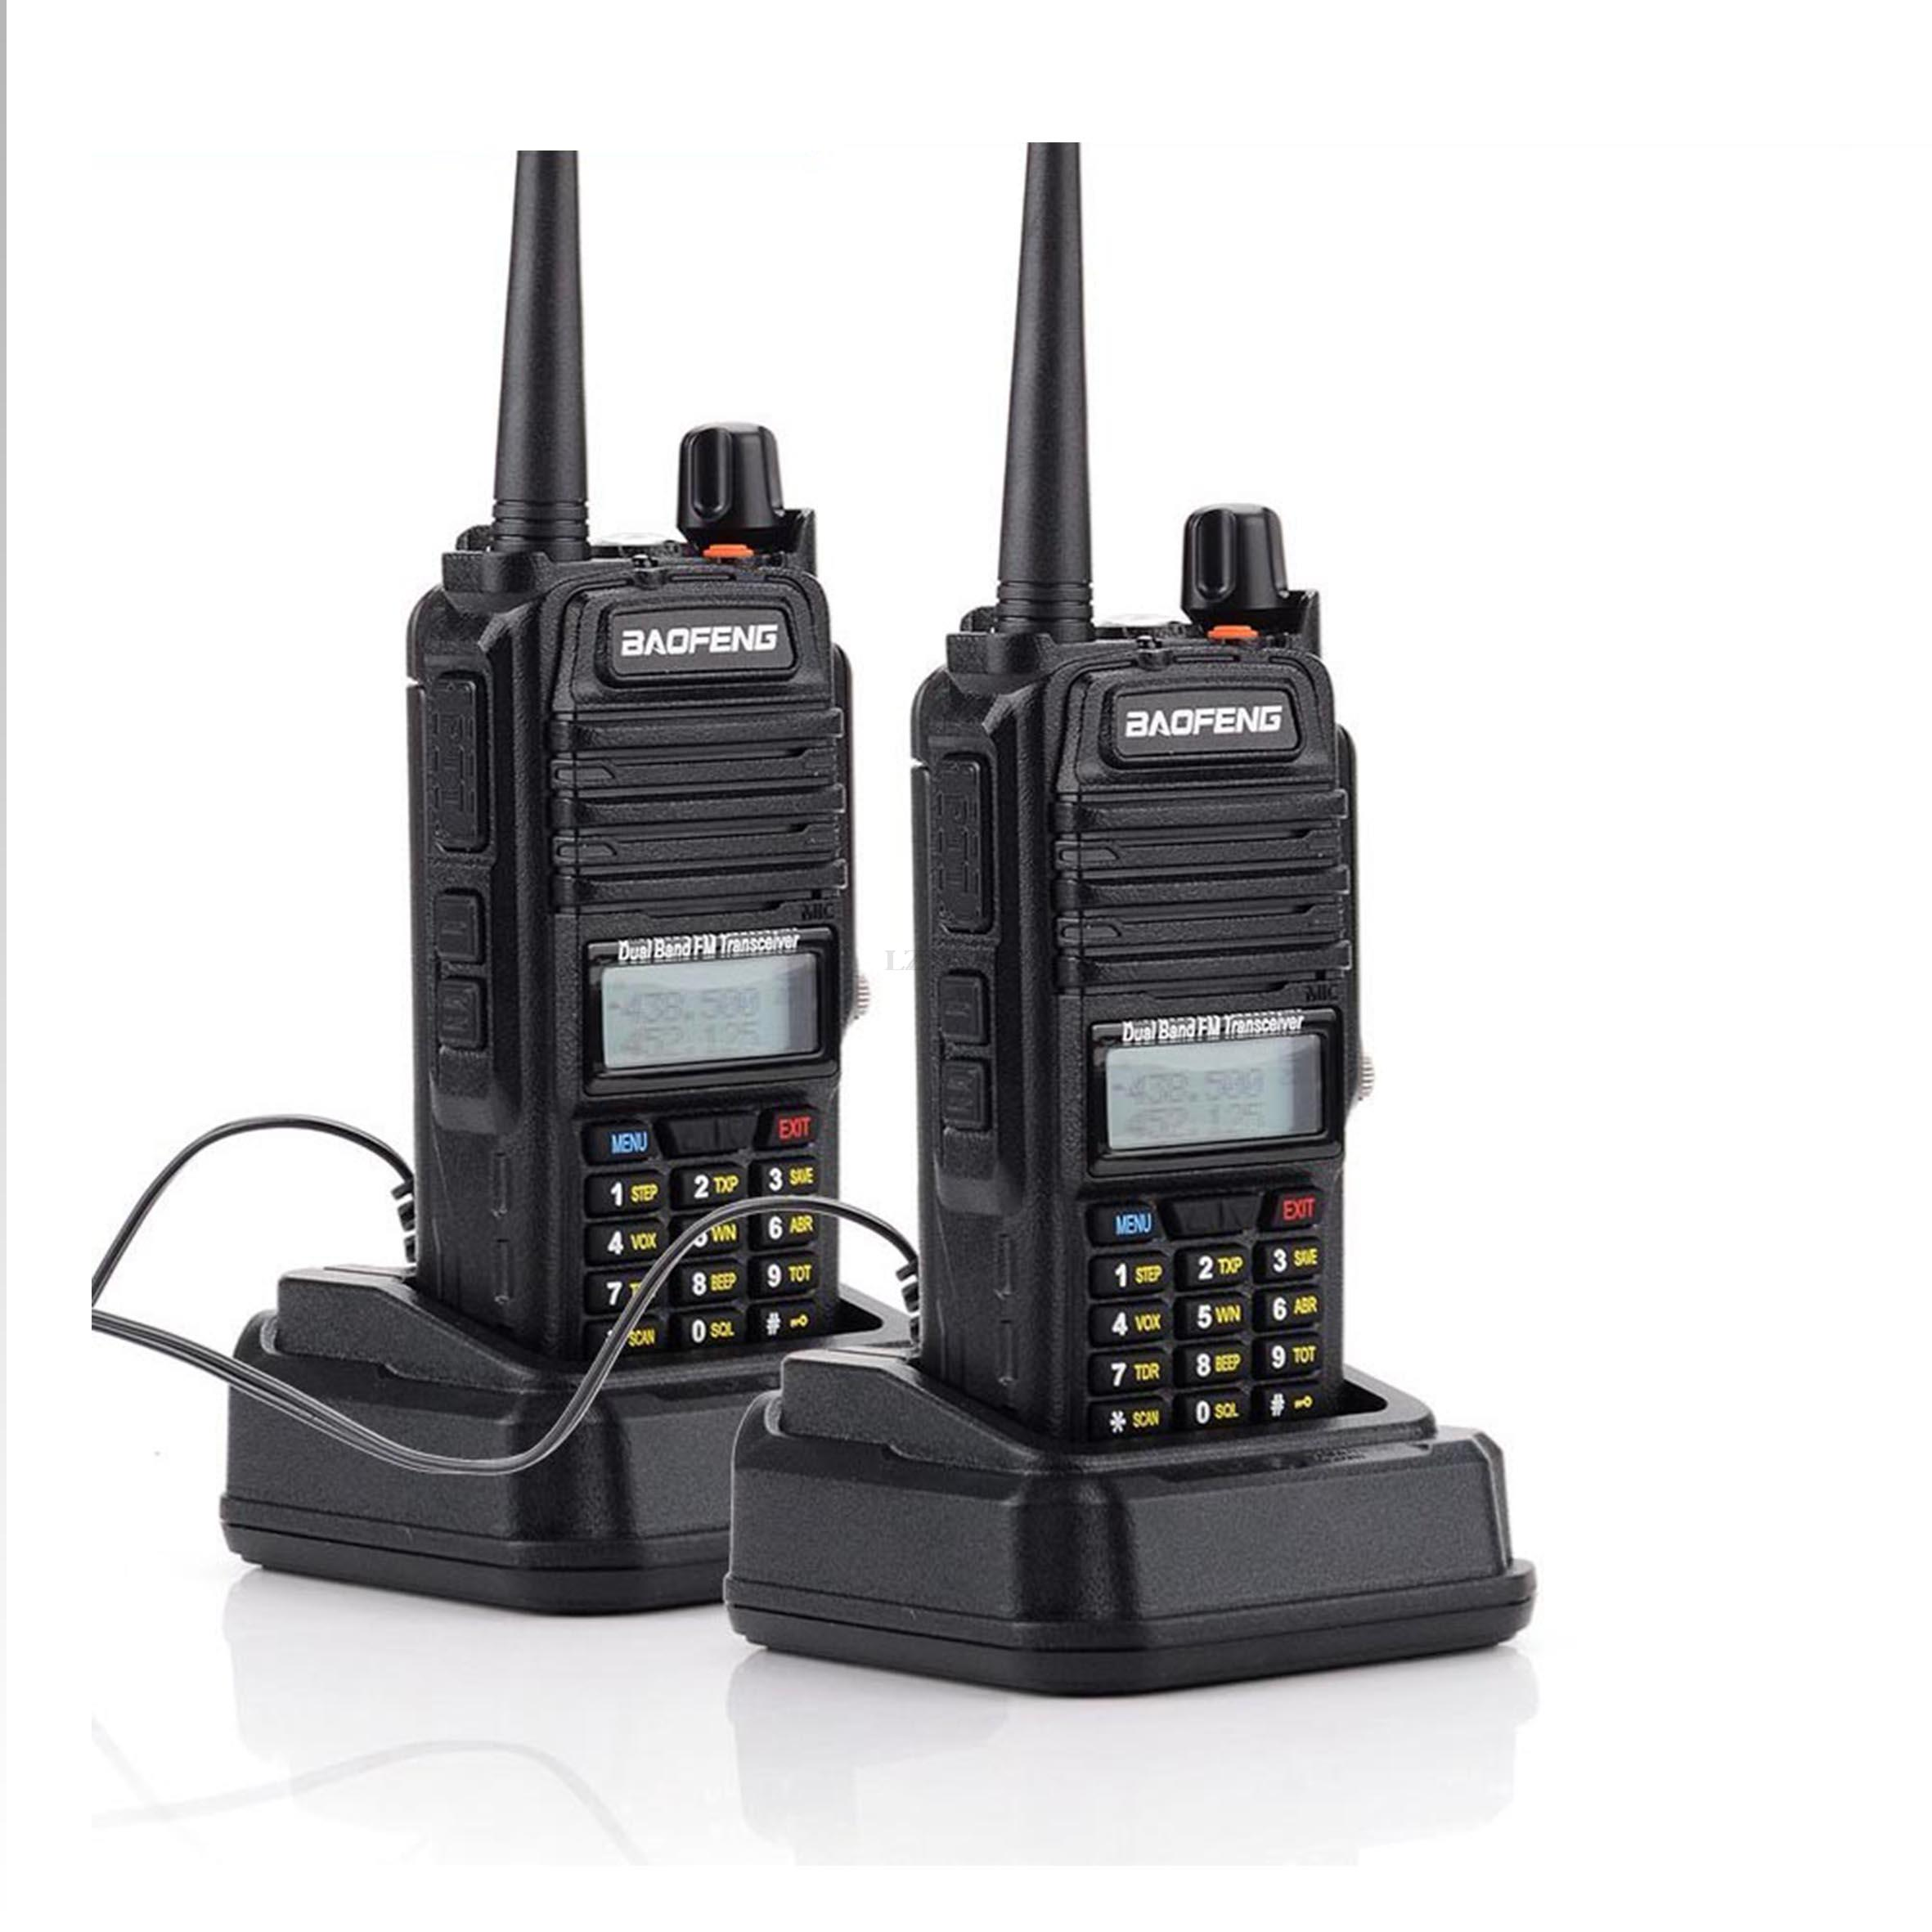 BaoFeng R760 BF R760 5W Dual Band Two Way CB Radio Portable Interphone Anti Dust profession Waterproof Walkie Talkie 2pcs/set-in Walkie Talkie from Cellphones & Telecommunications    1